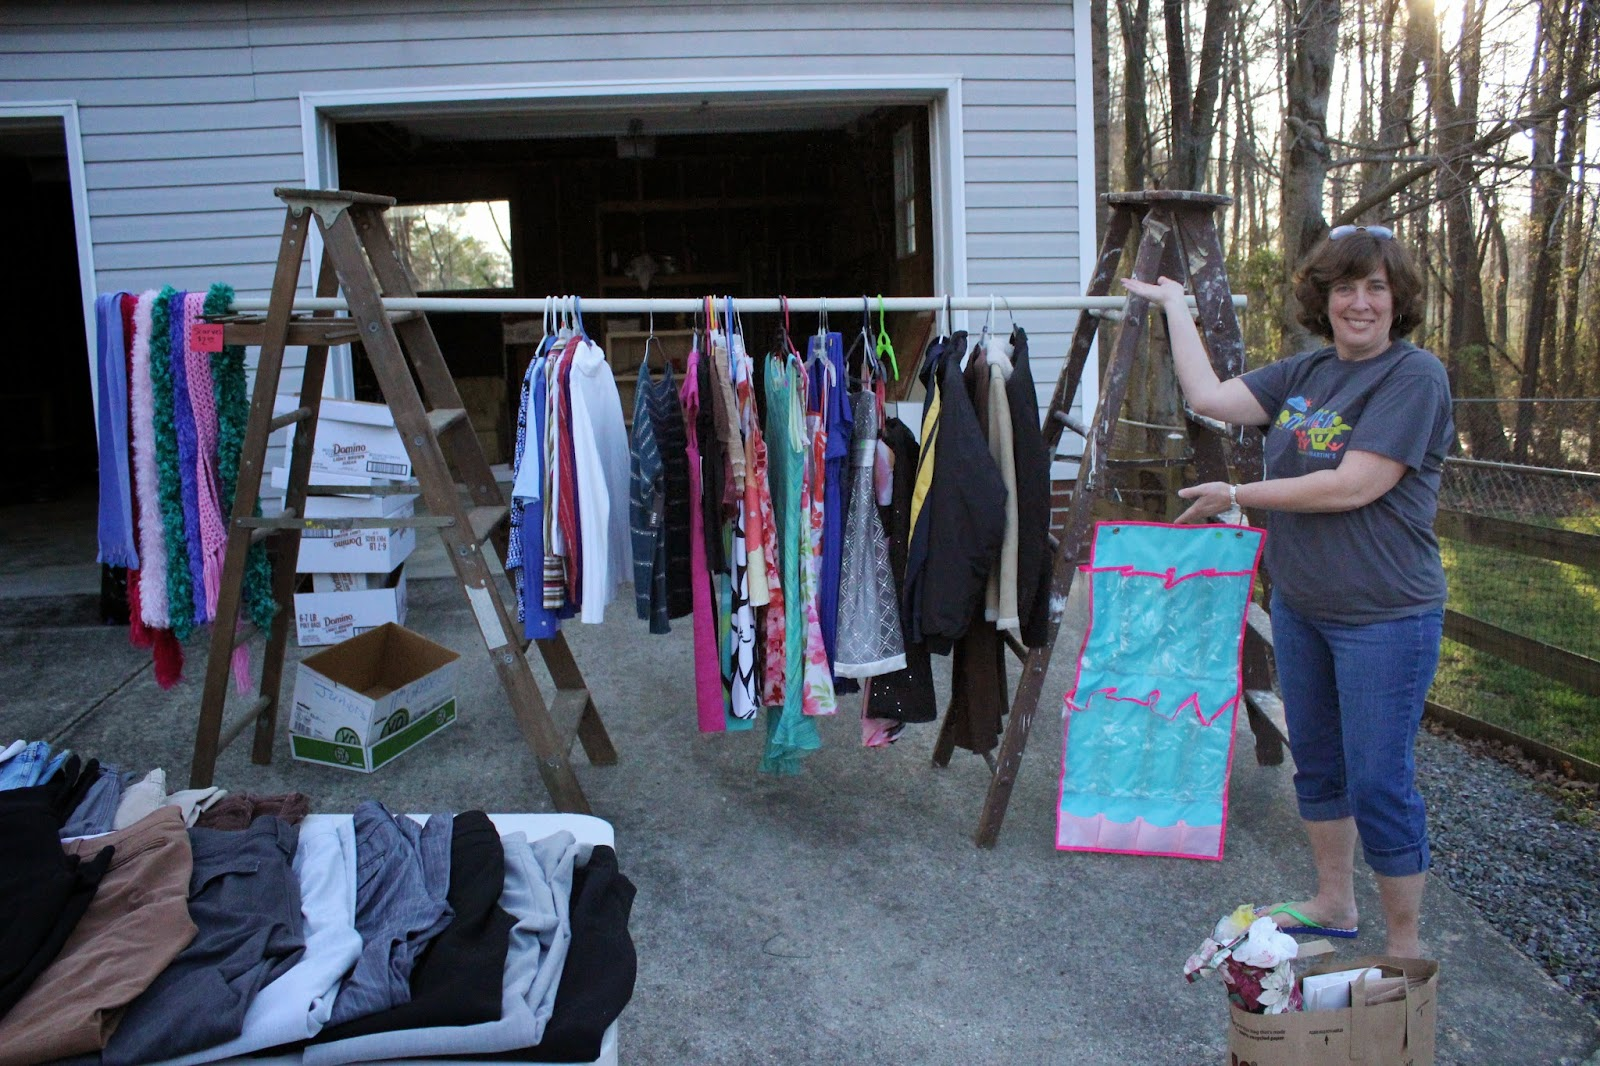 The Nolte Fam: Our First Yard Sale on homemade round clothes rack for garage sale, yard sale, ghetto garage sale, ideas for garage to hang clothes on sale,